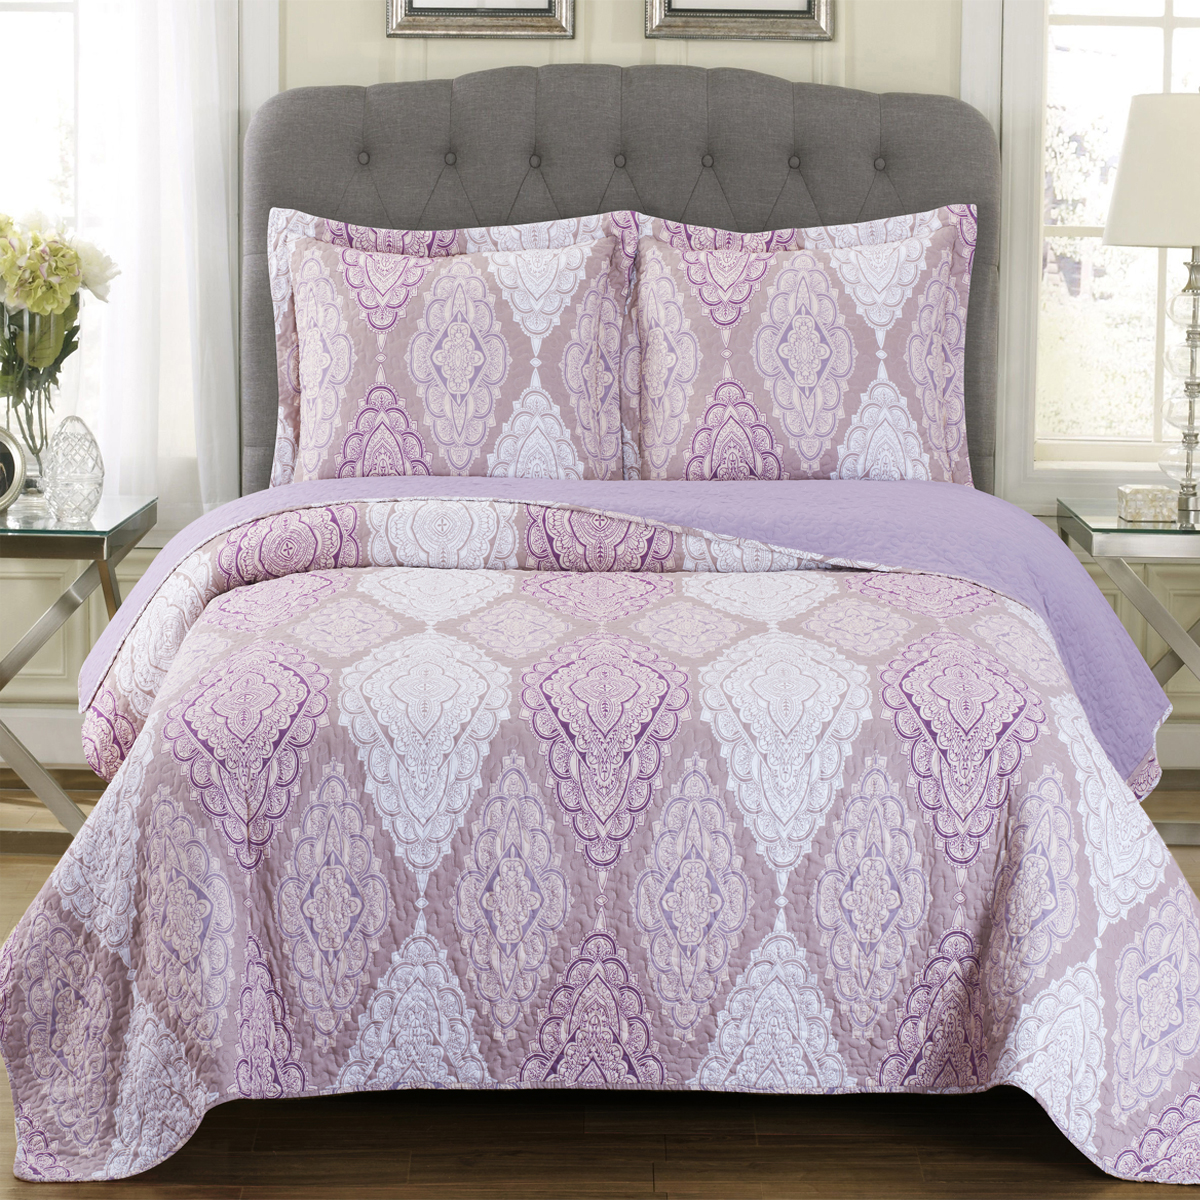 Jewel Coverlet Patchwork Print Wrinkle Free Set Oversized Reversible Quilt Set by Royal Plaza Textiles, Inc.